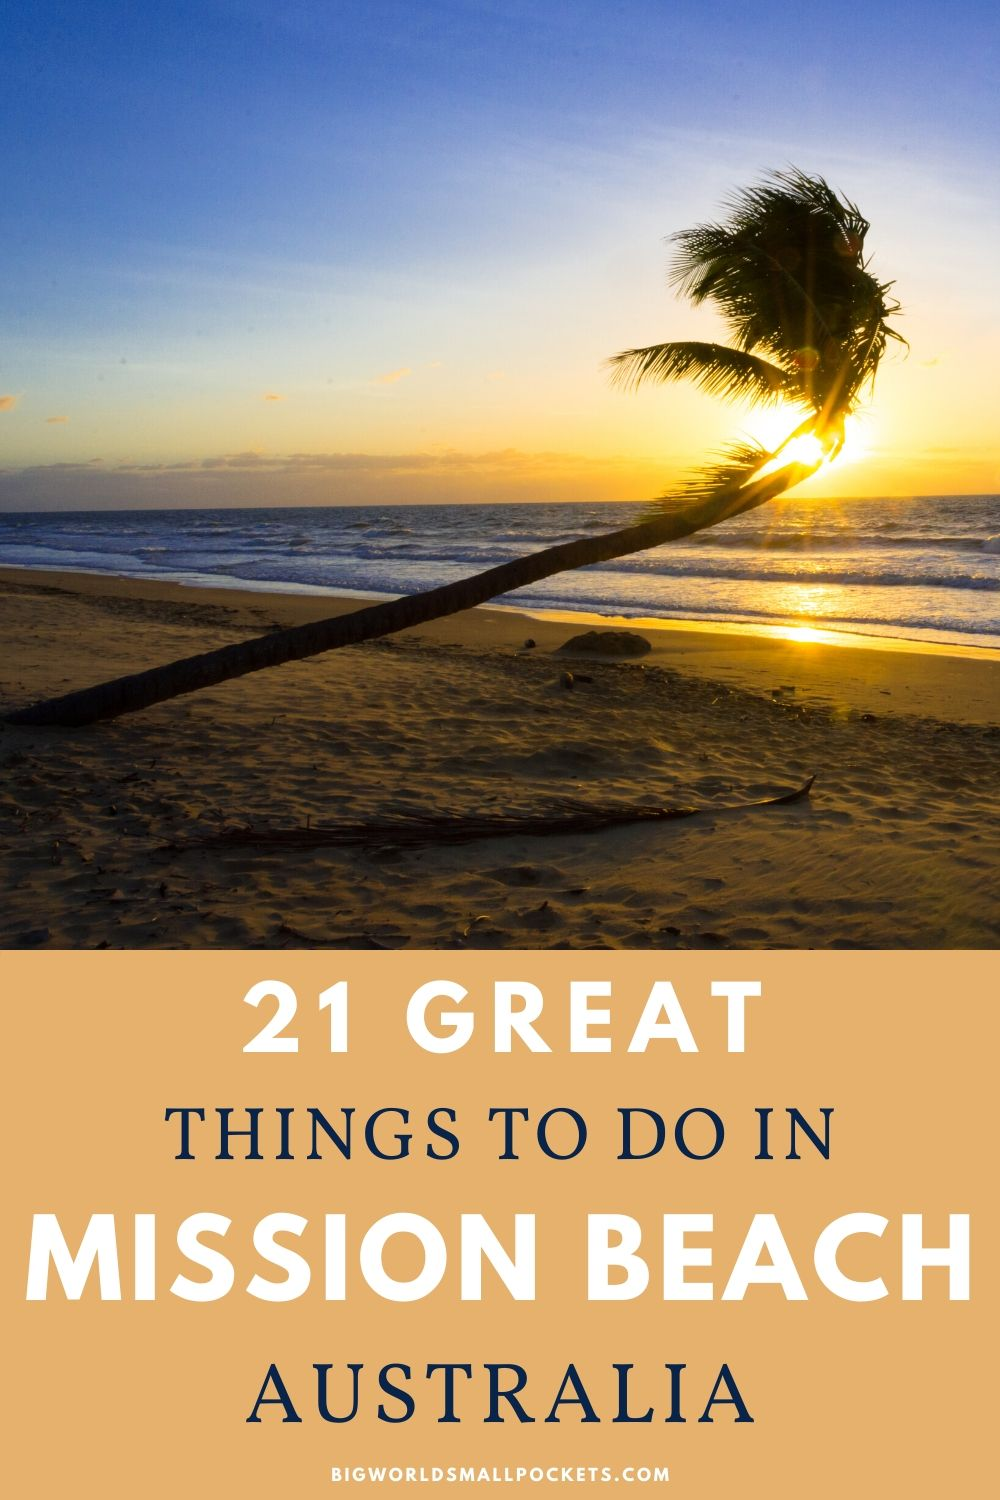 21 Things to do in Mission Beach, Australia